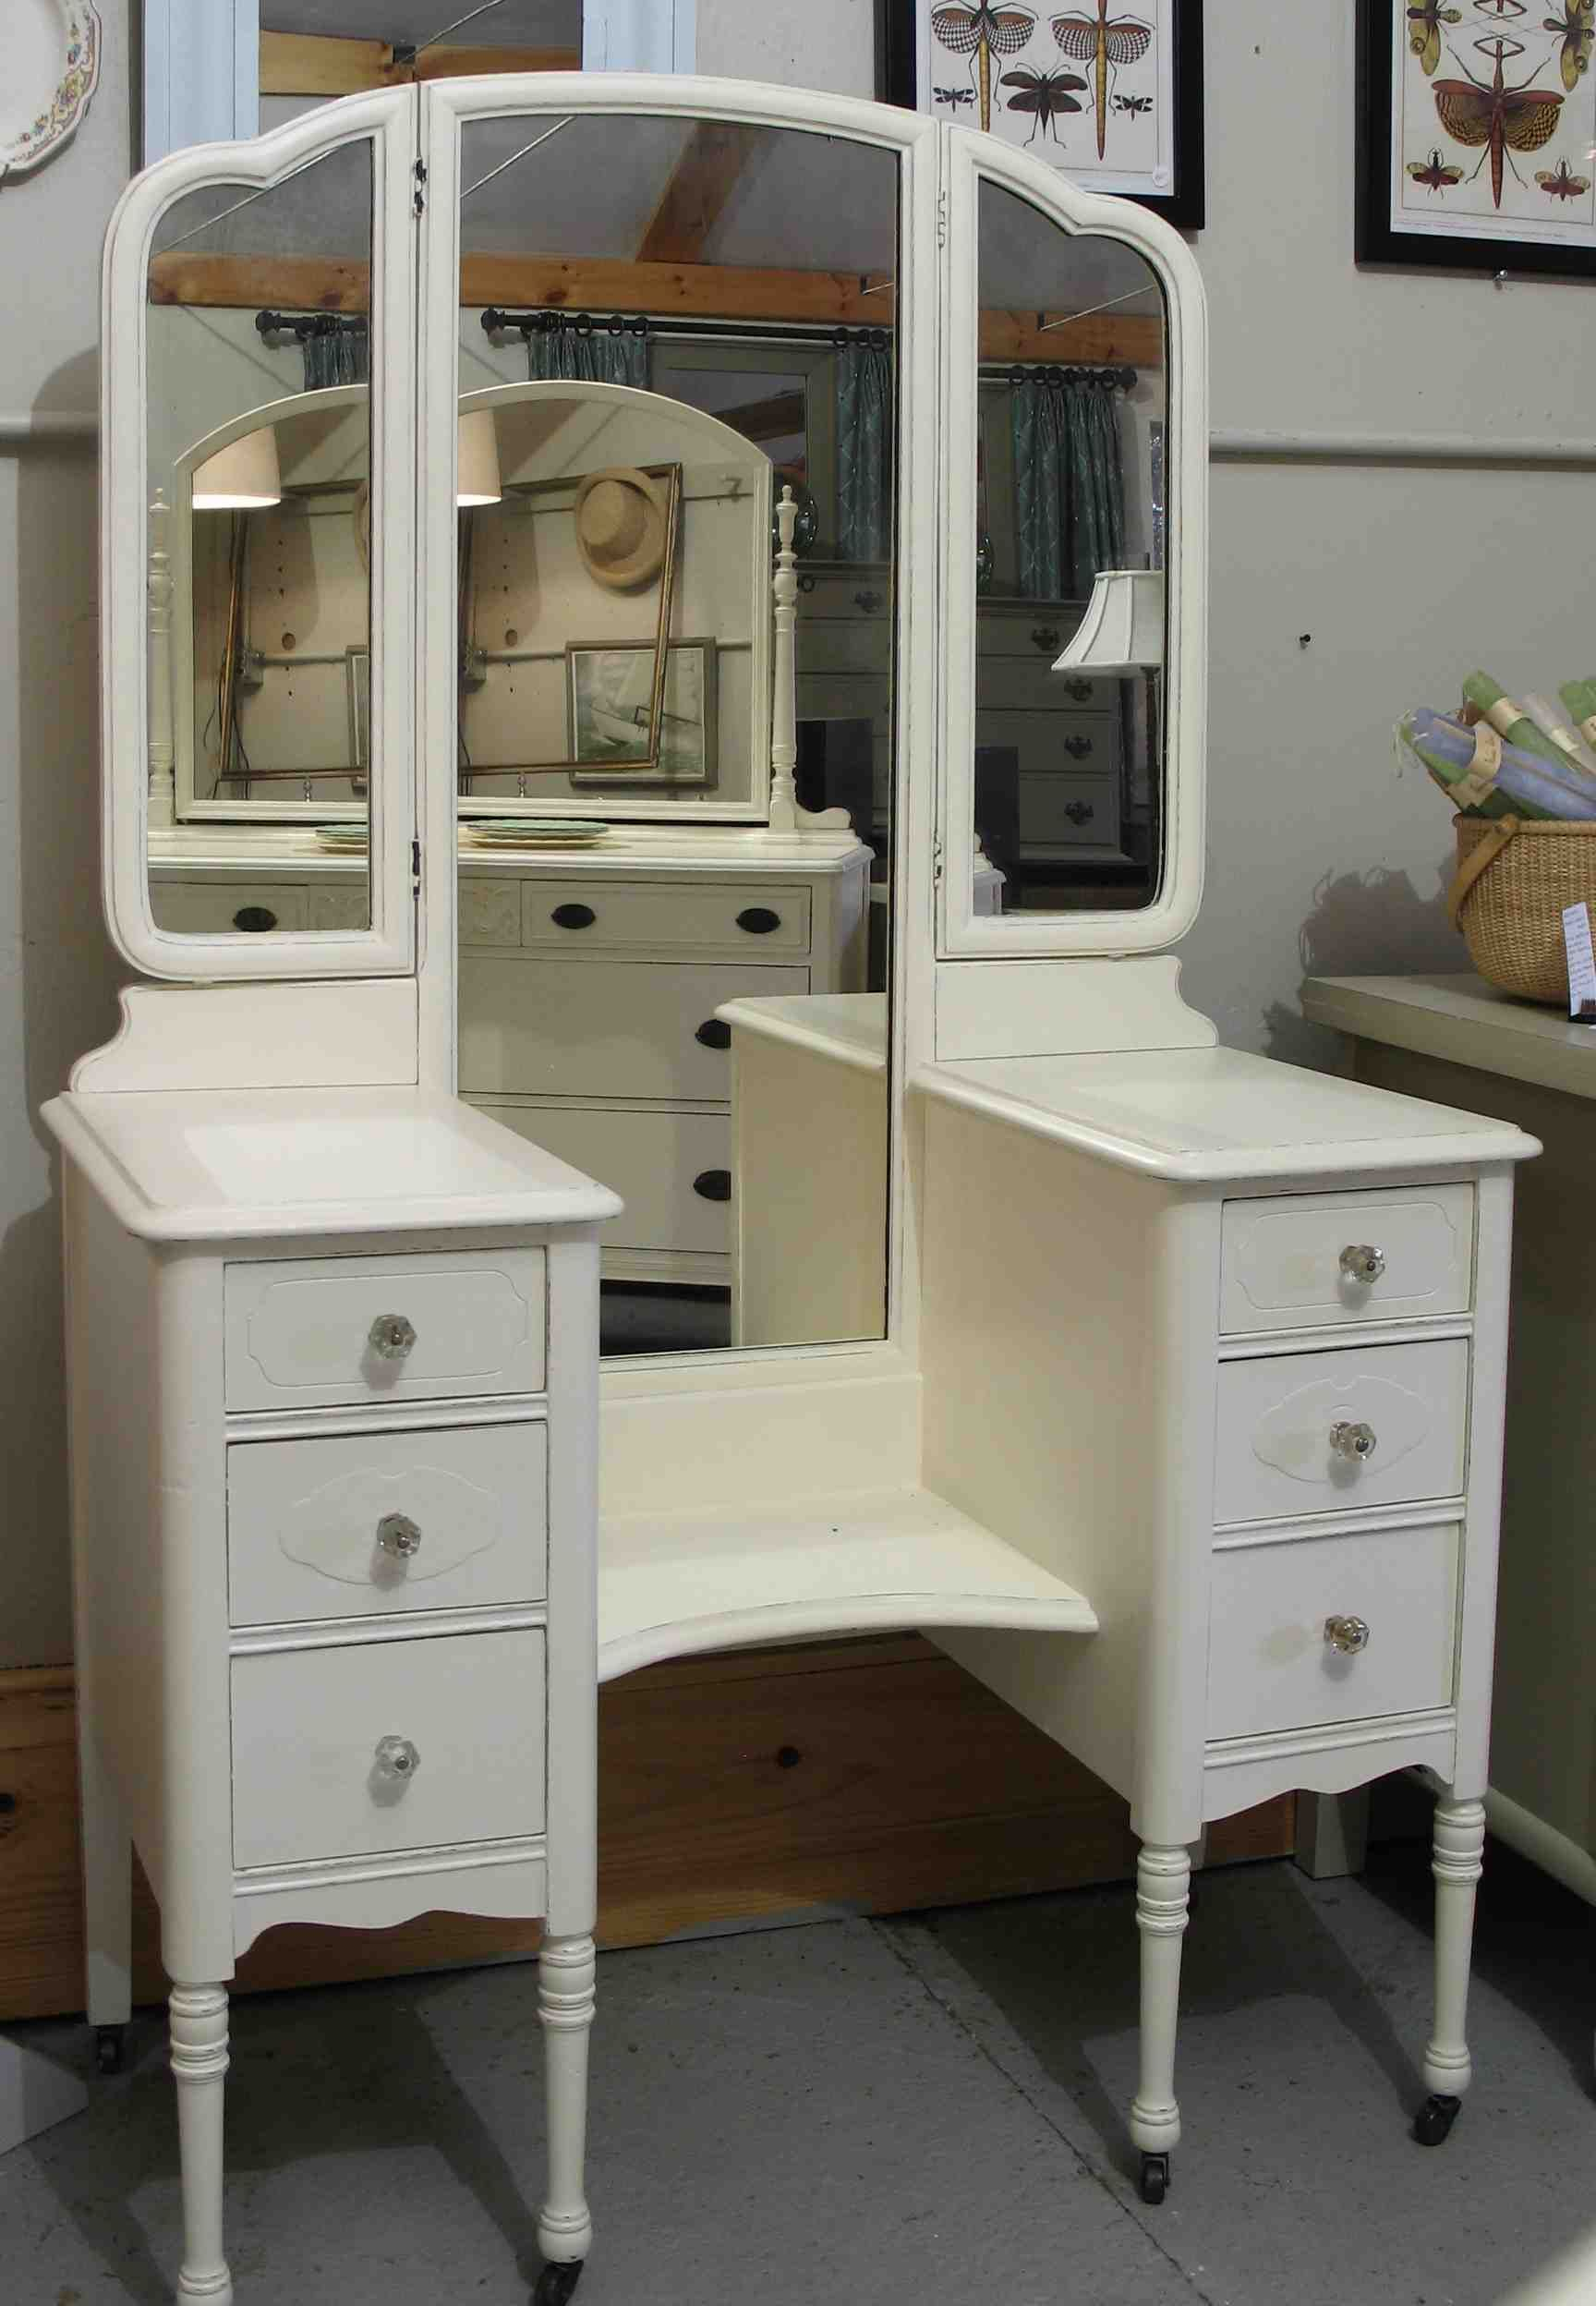 Furniture old and vintage wooden makeup vanity table with fold